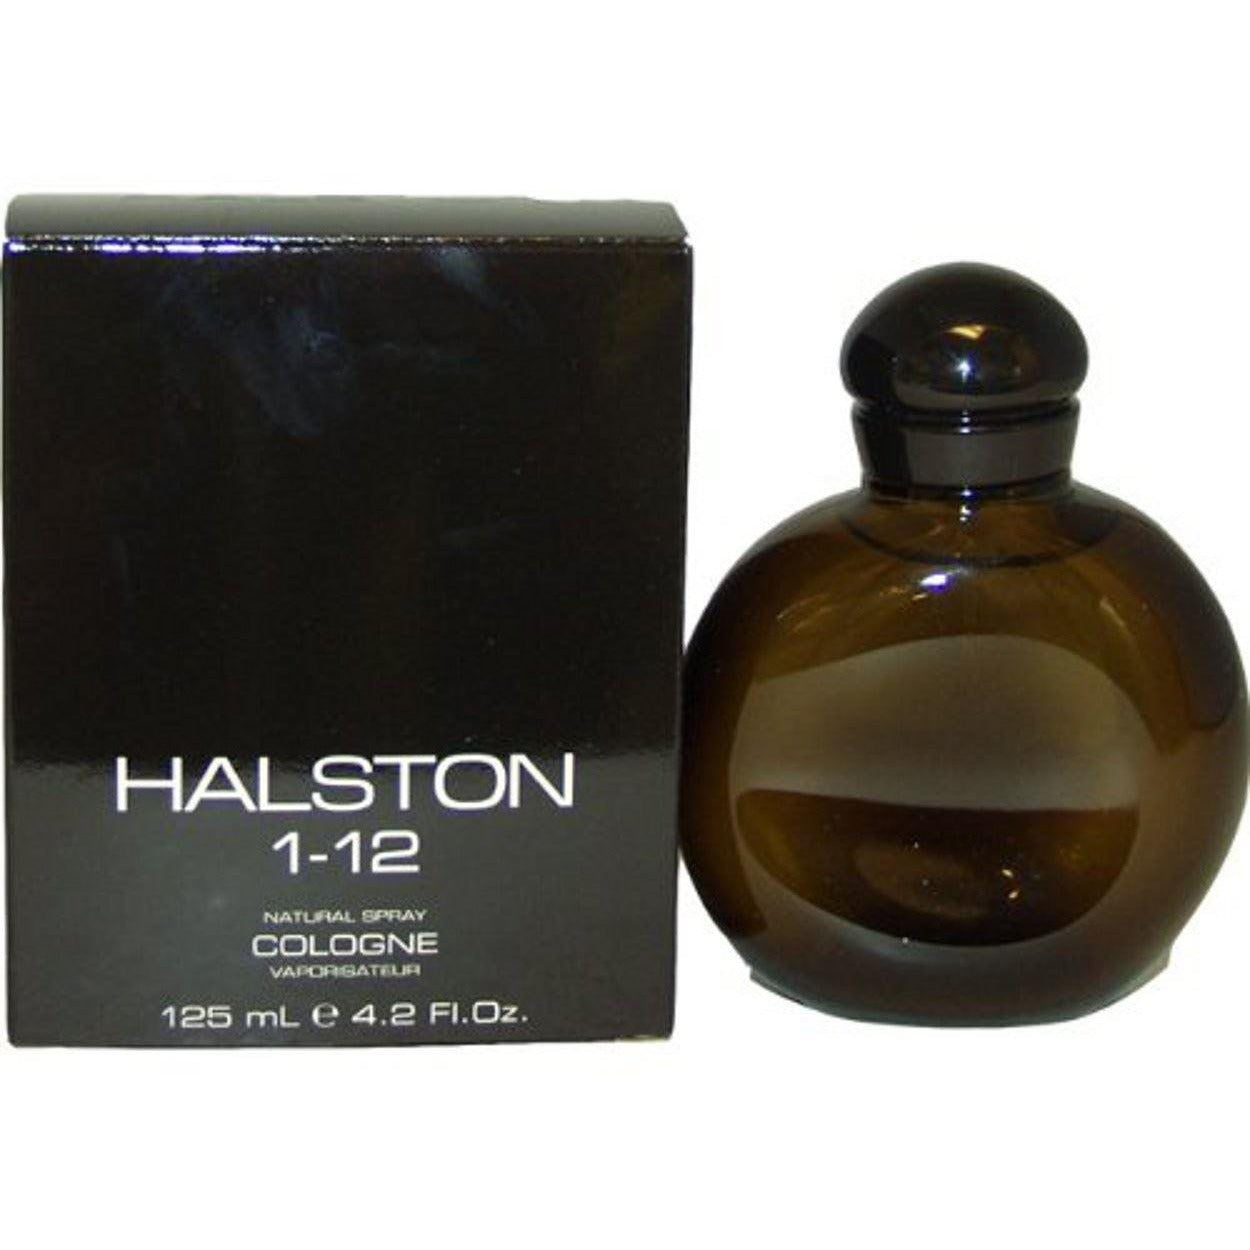 halston-1-12-cologne-4-2-oz-spray-for-men-new-in-box-i-12